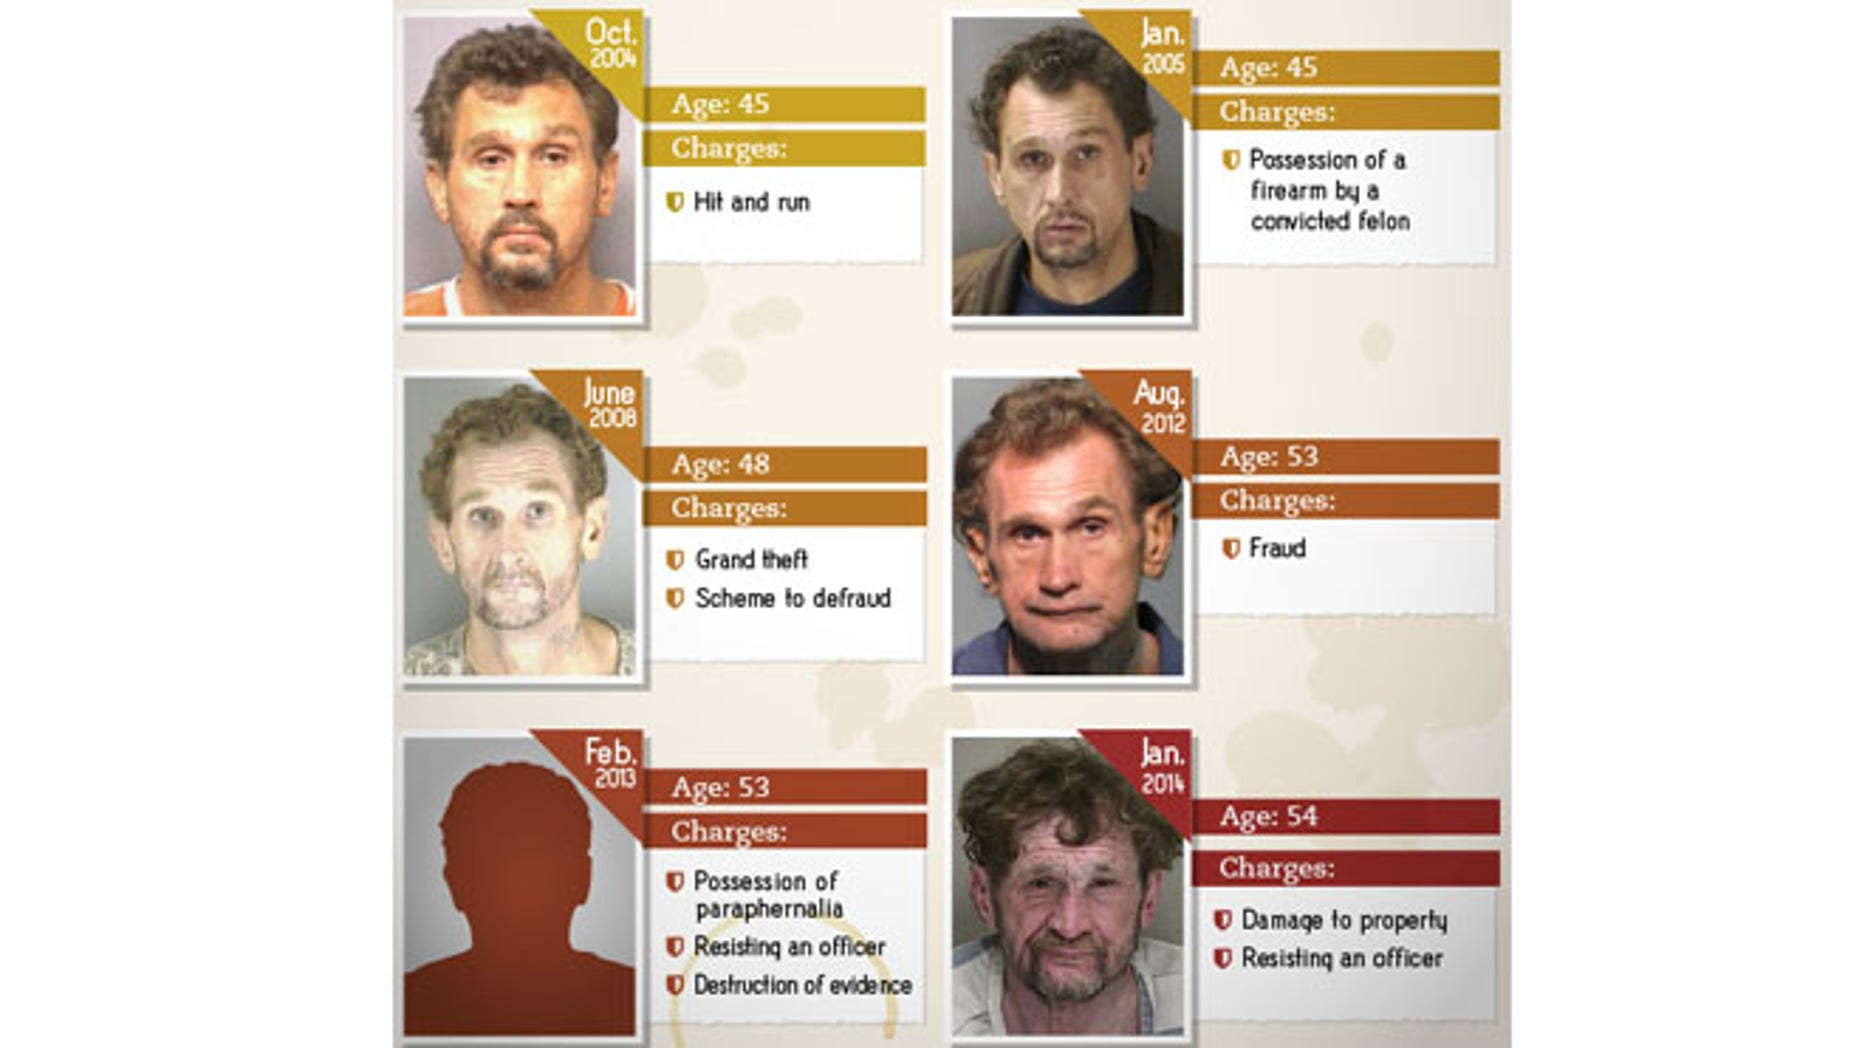 Michael racked up numerous arrests between 2004 and 2014, including for possession of drug paraphernalia. (Images courtesy of Rehabs.com)